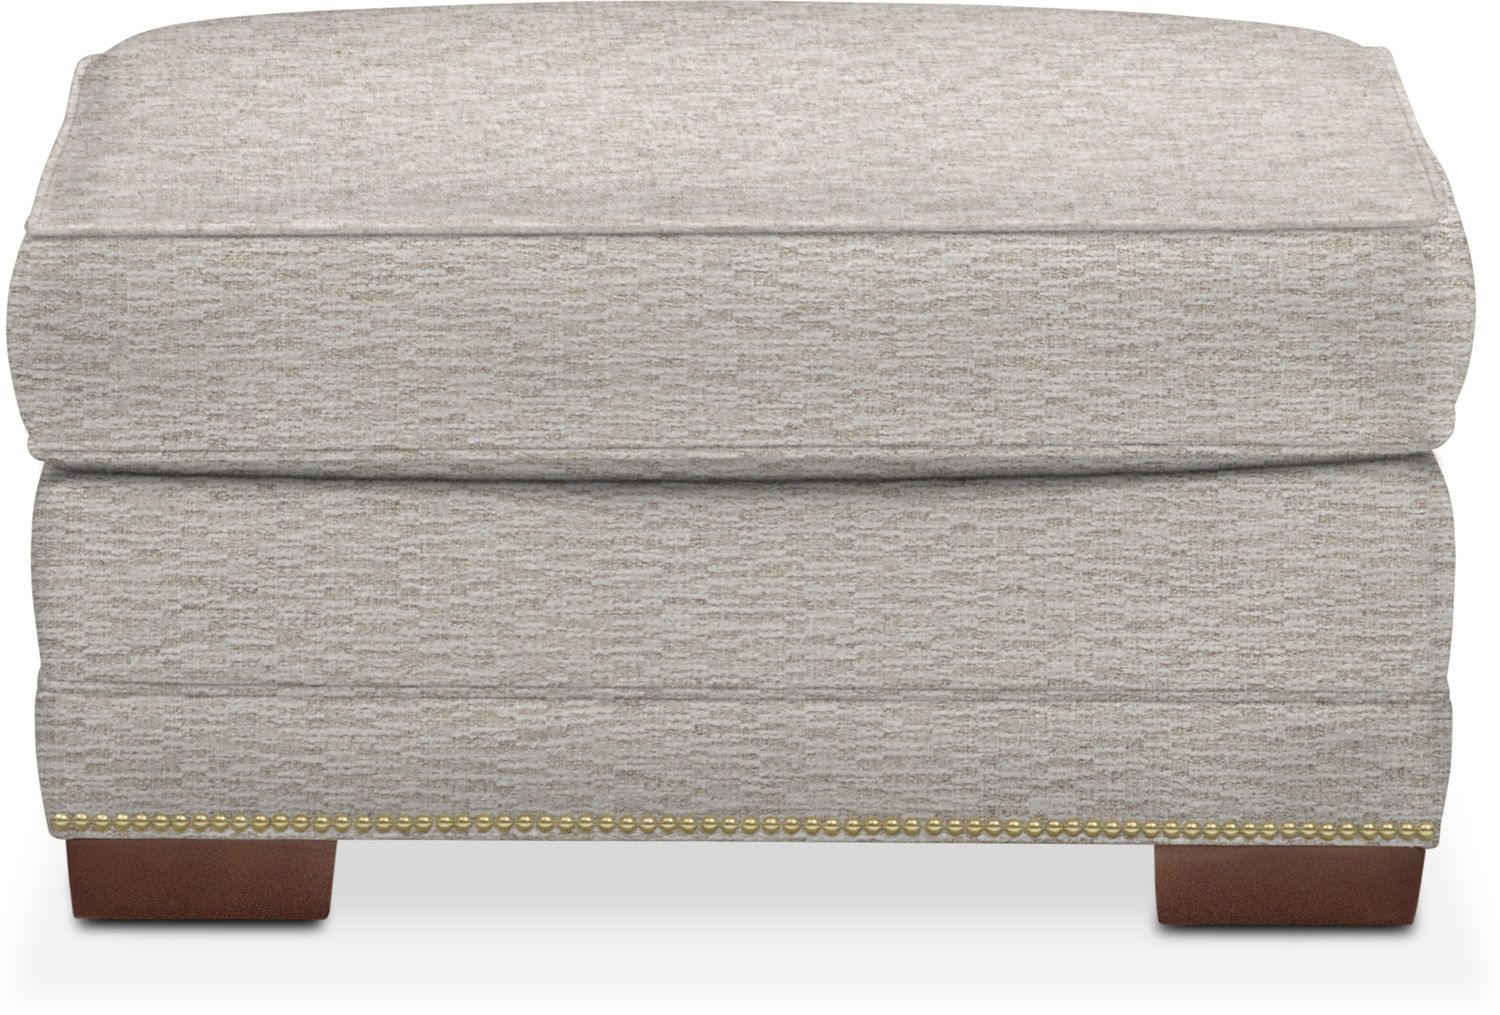 Superb Arden Comfort Ottoman Living Large White In 2019 Unemploymentrelief Wooden Chair Designs For Living Room Unemploymentrelieforg